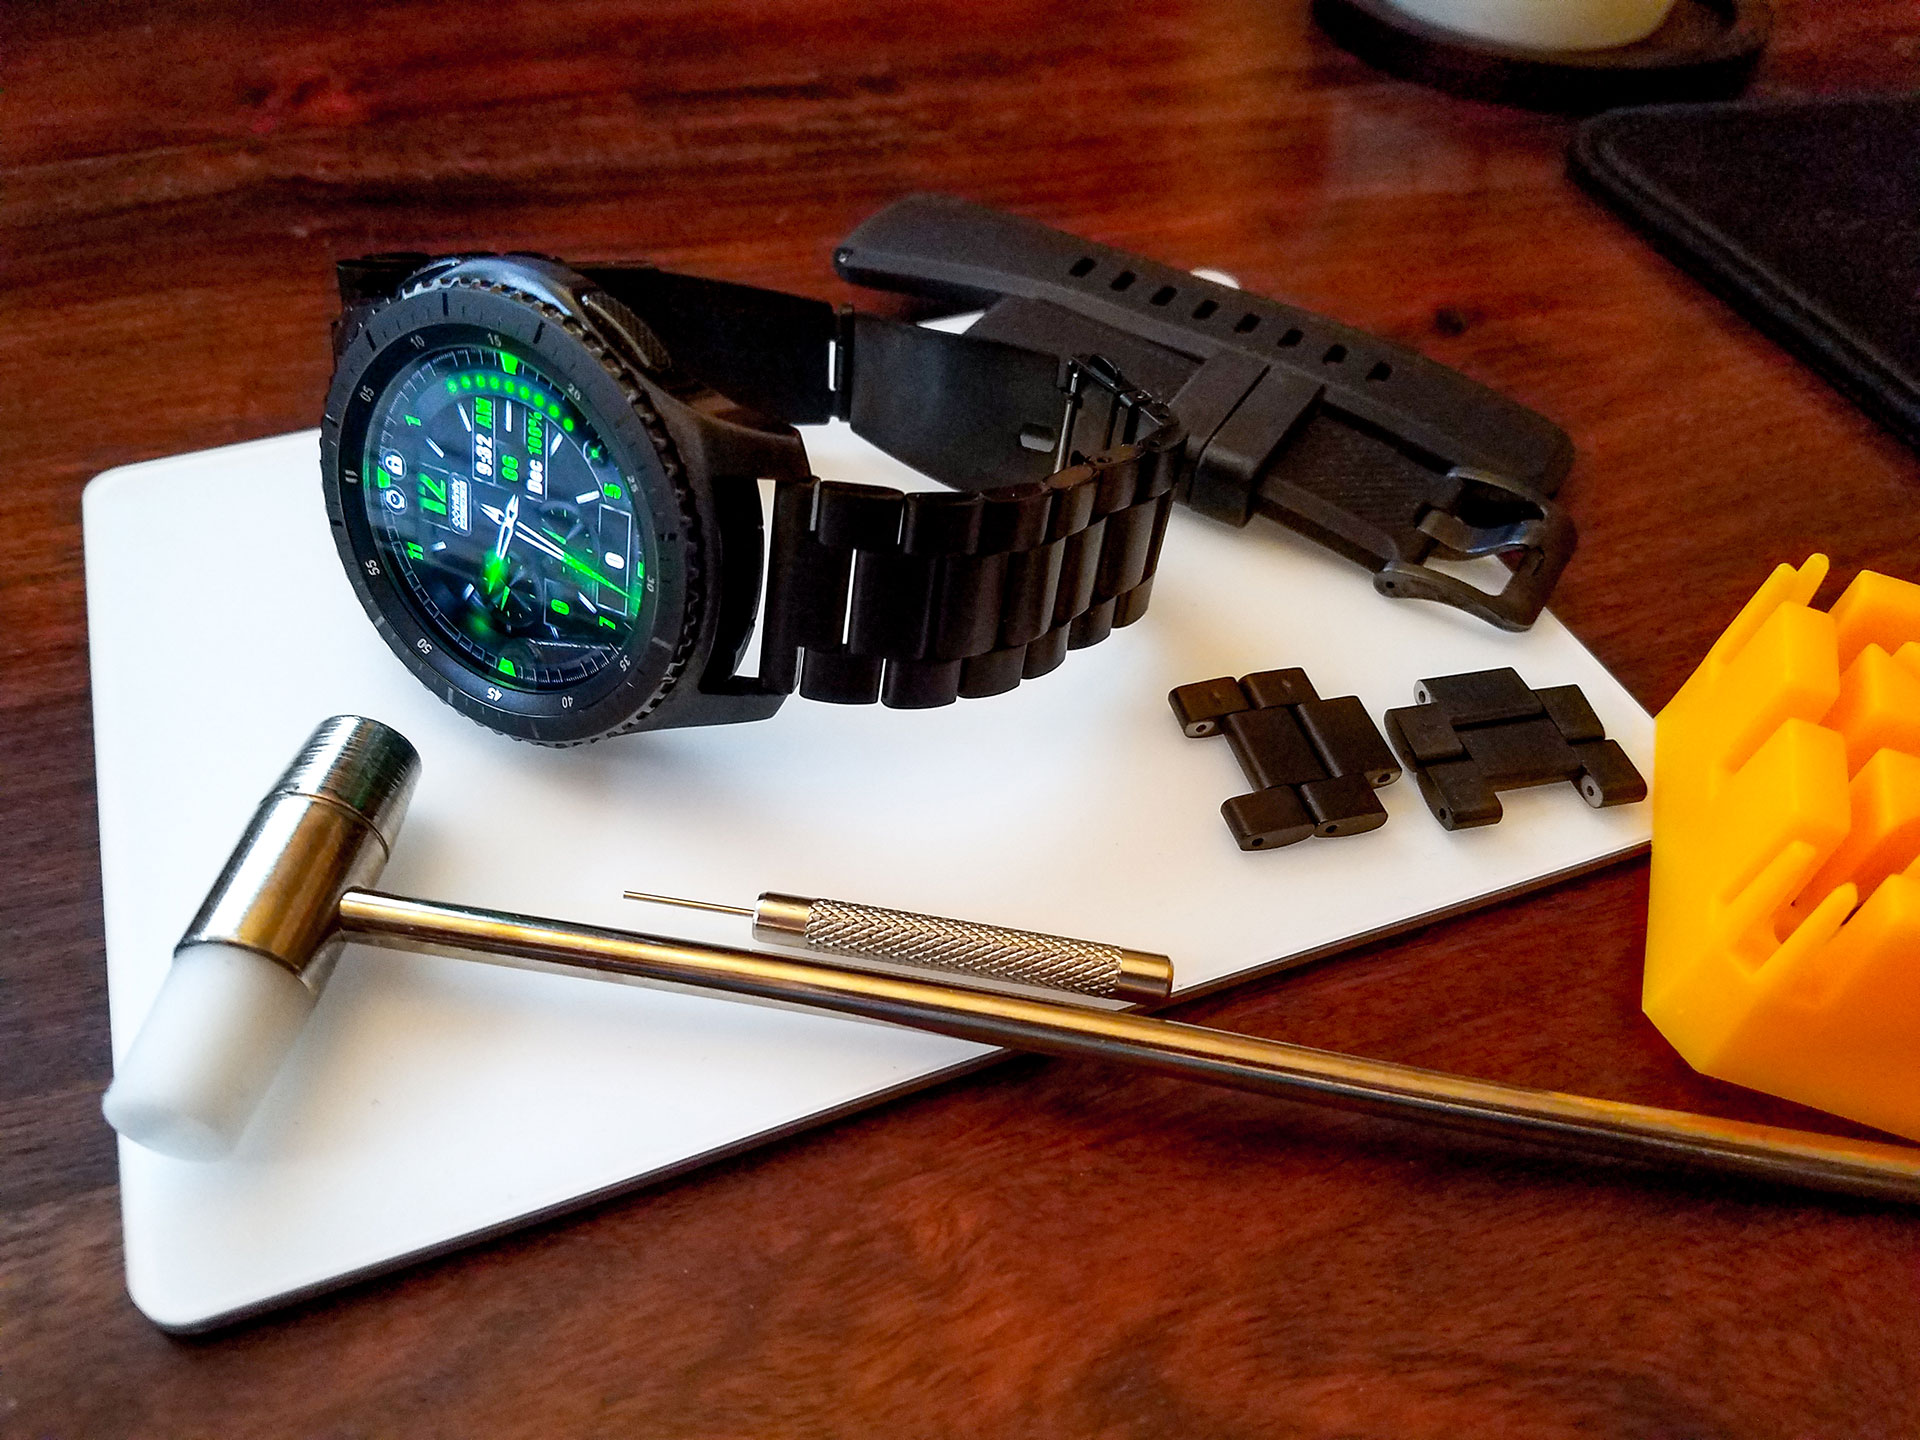 A Metal Watch Band for Your Gear S3 Frontier